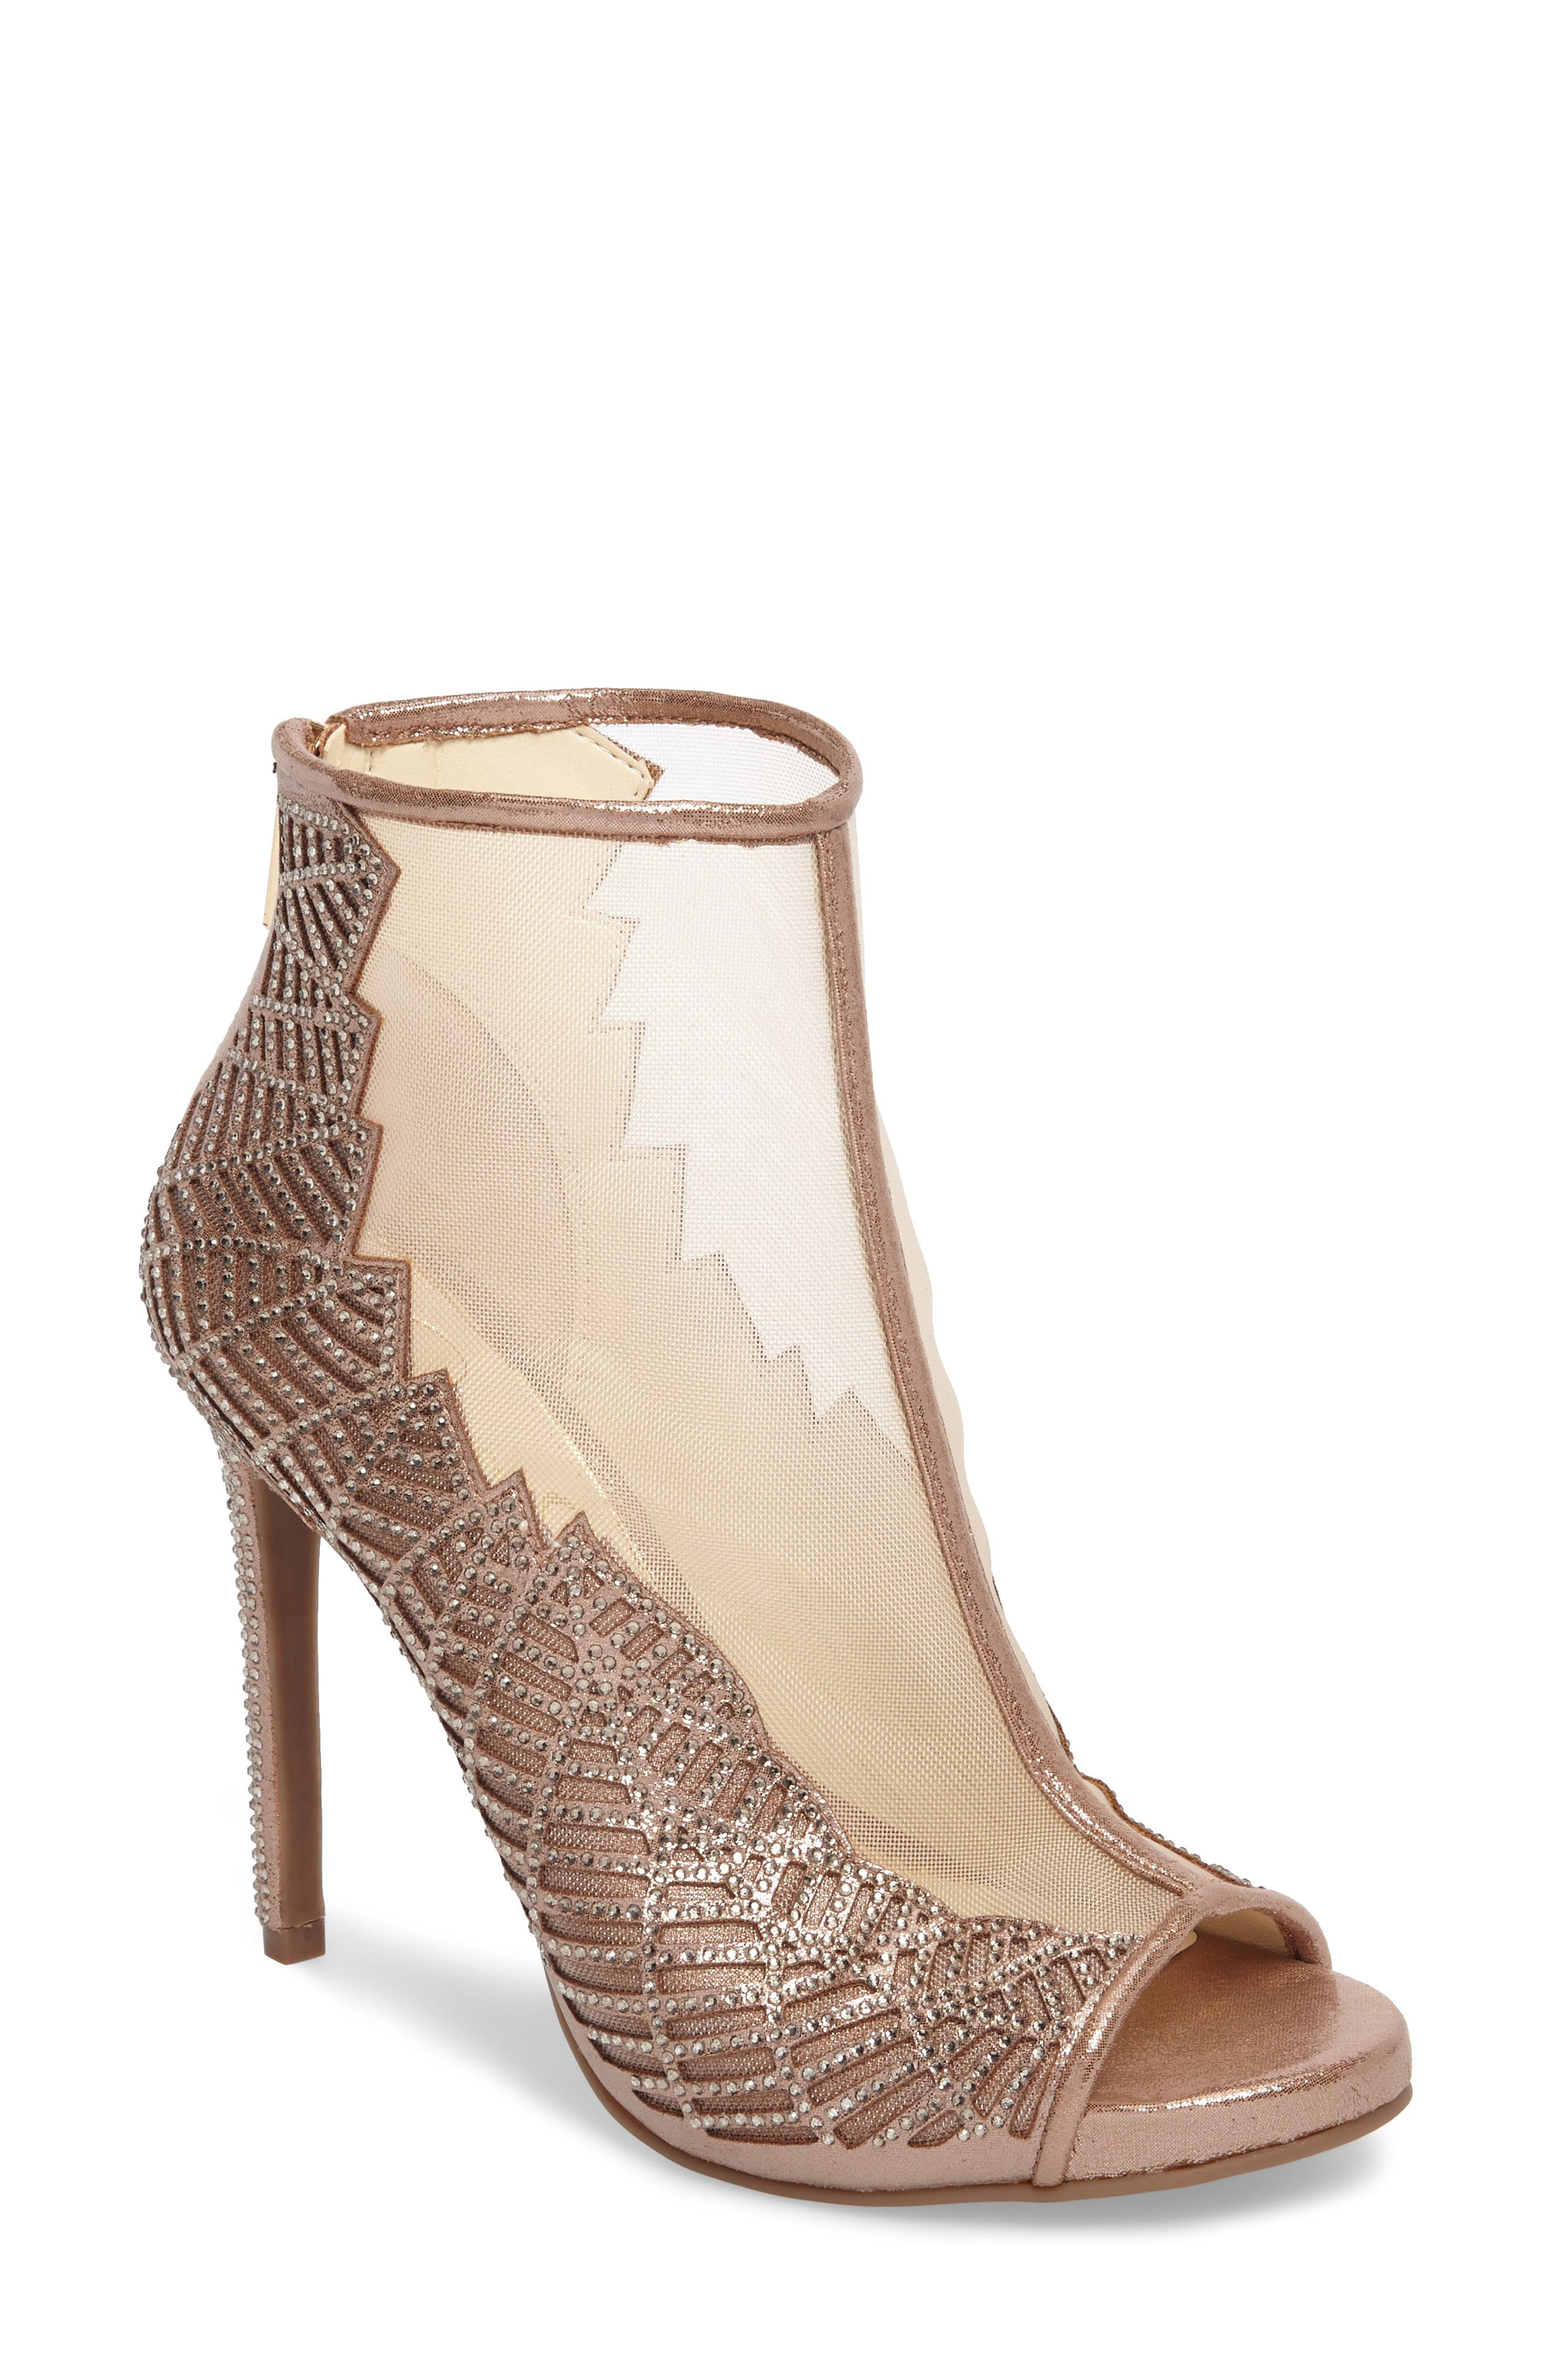 Radko Embellished Sandal,                         Main,                         color, Light Sheer Mesh